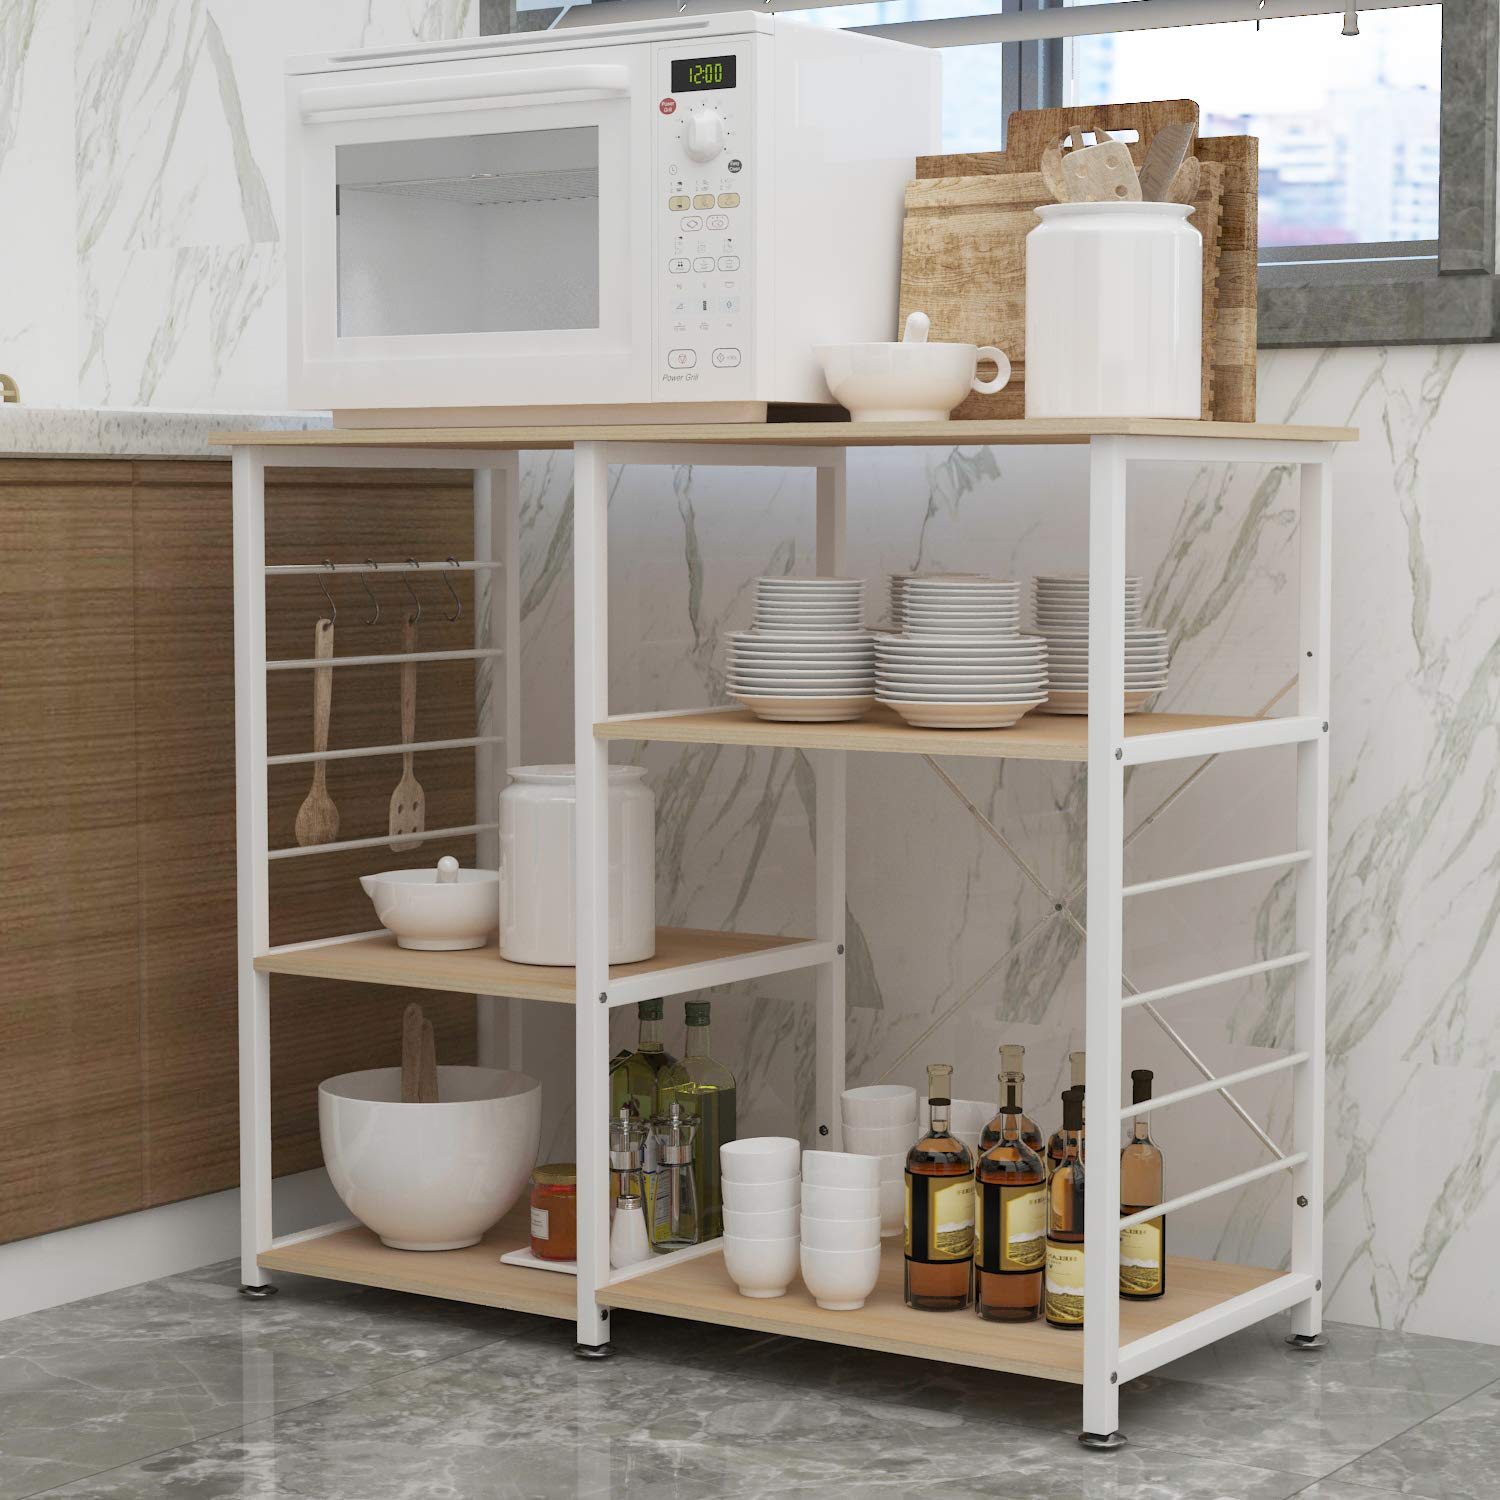 SogesHome 4-Tier Kitchen Baker's Rack Utility Microwave Oven Stand Storage Cart Workstation Shelf,White Oak NSDUS-171-MO-ZF by SogesHome